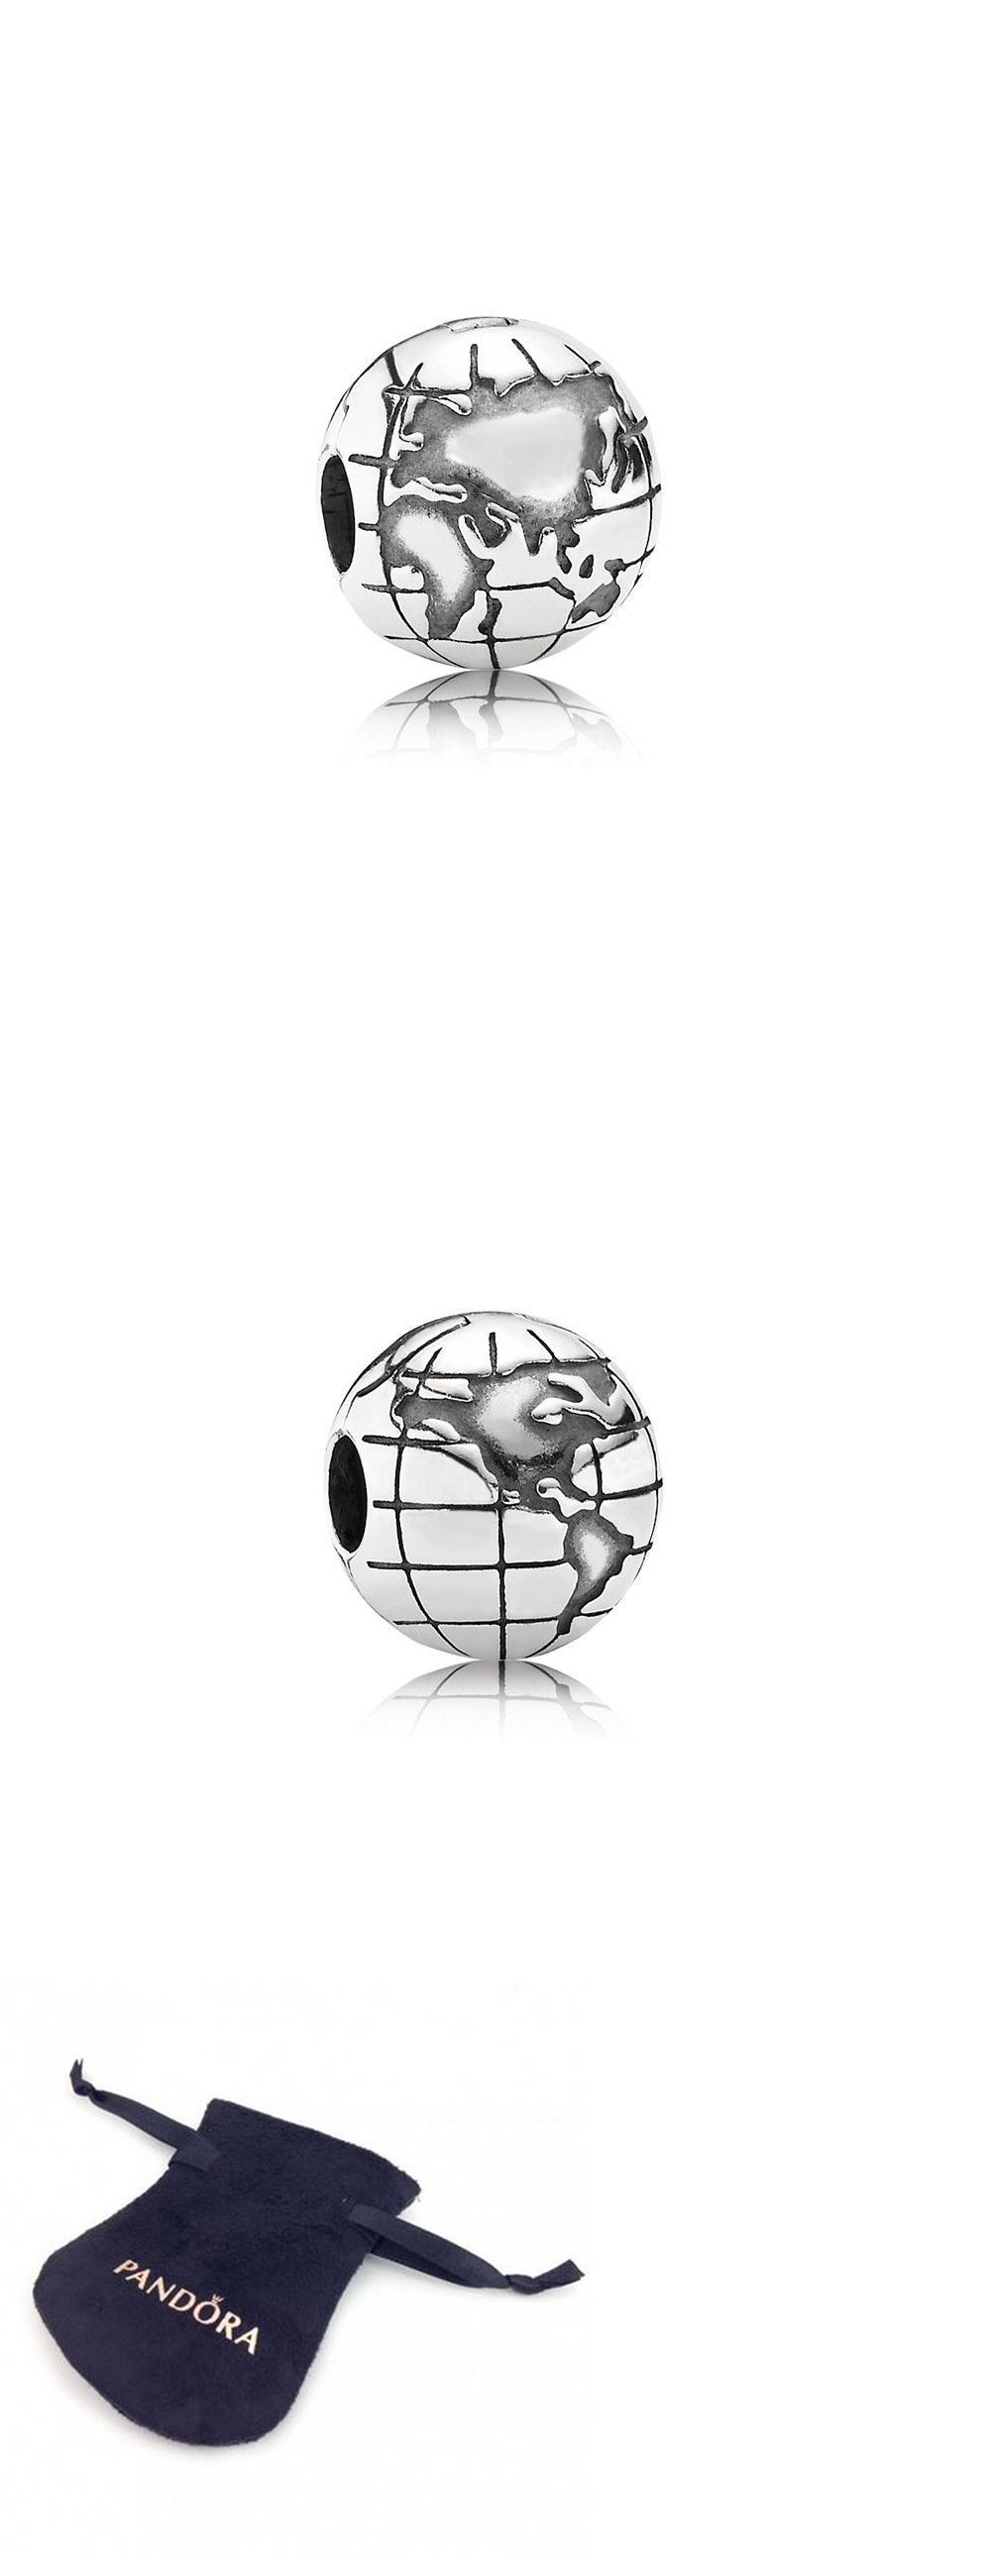 fa88fe2ff Wishlist Compare Charms and Charm Bracelets 140944 Authentic Pandora  Sterling Silver Globe Clip 791182 ...